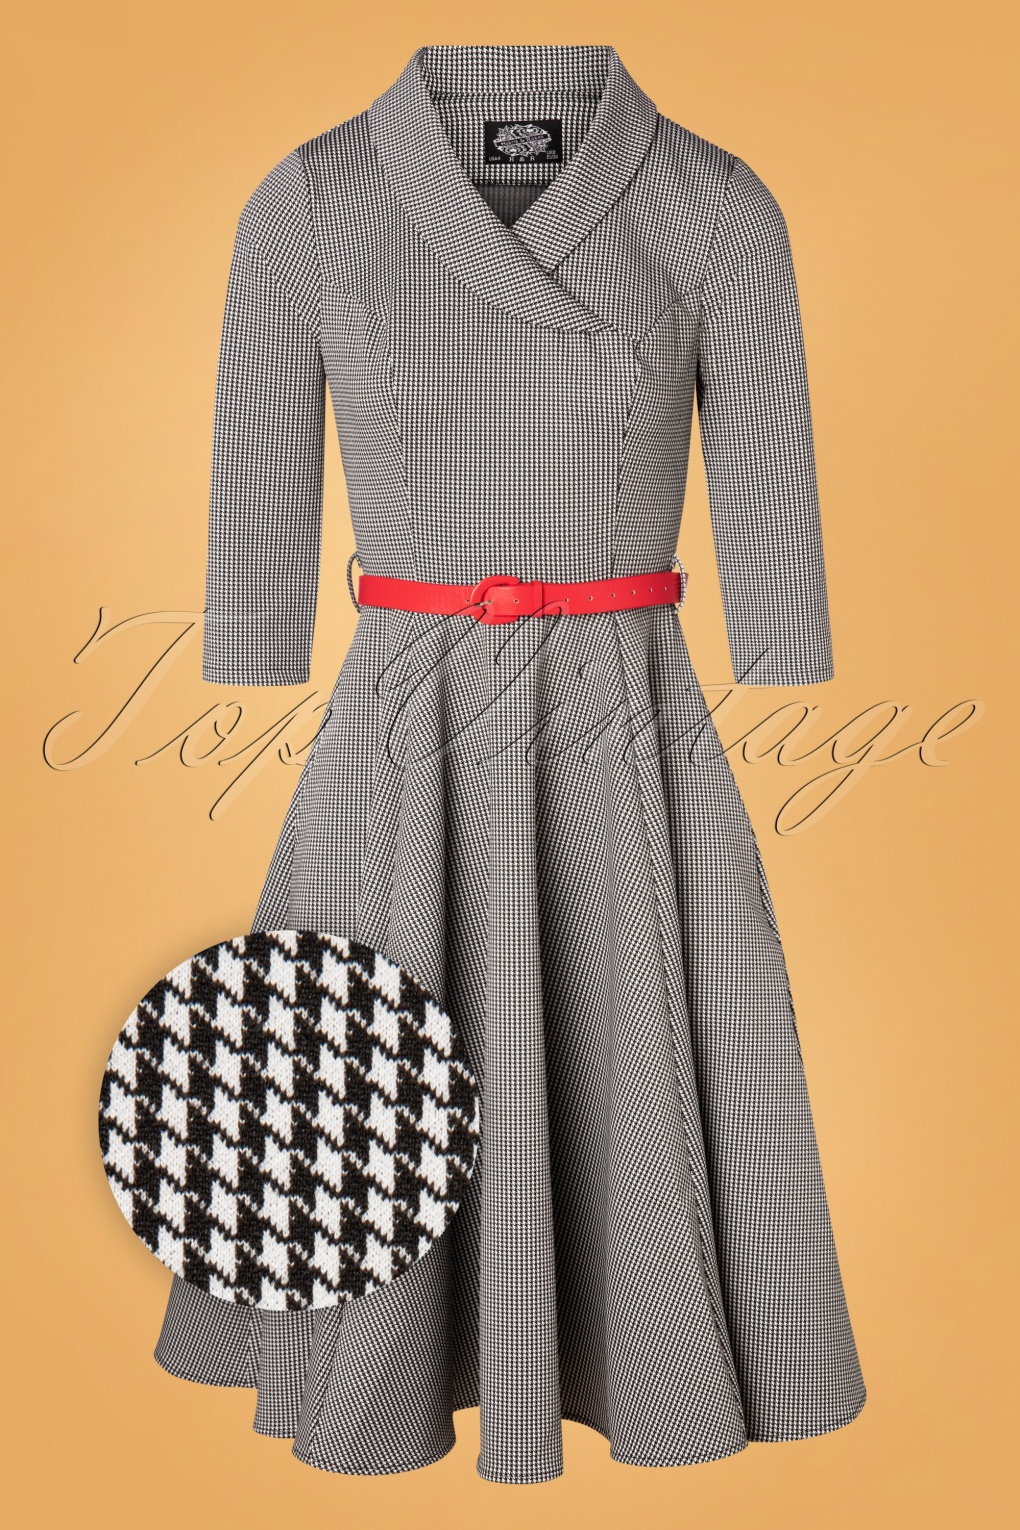 1950s Dresses, 50s Dresses | 1950s Style Dresses 50s Hanna Houndstooth Swing Dress in Black and White £53.29 AT vintagedancer.com